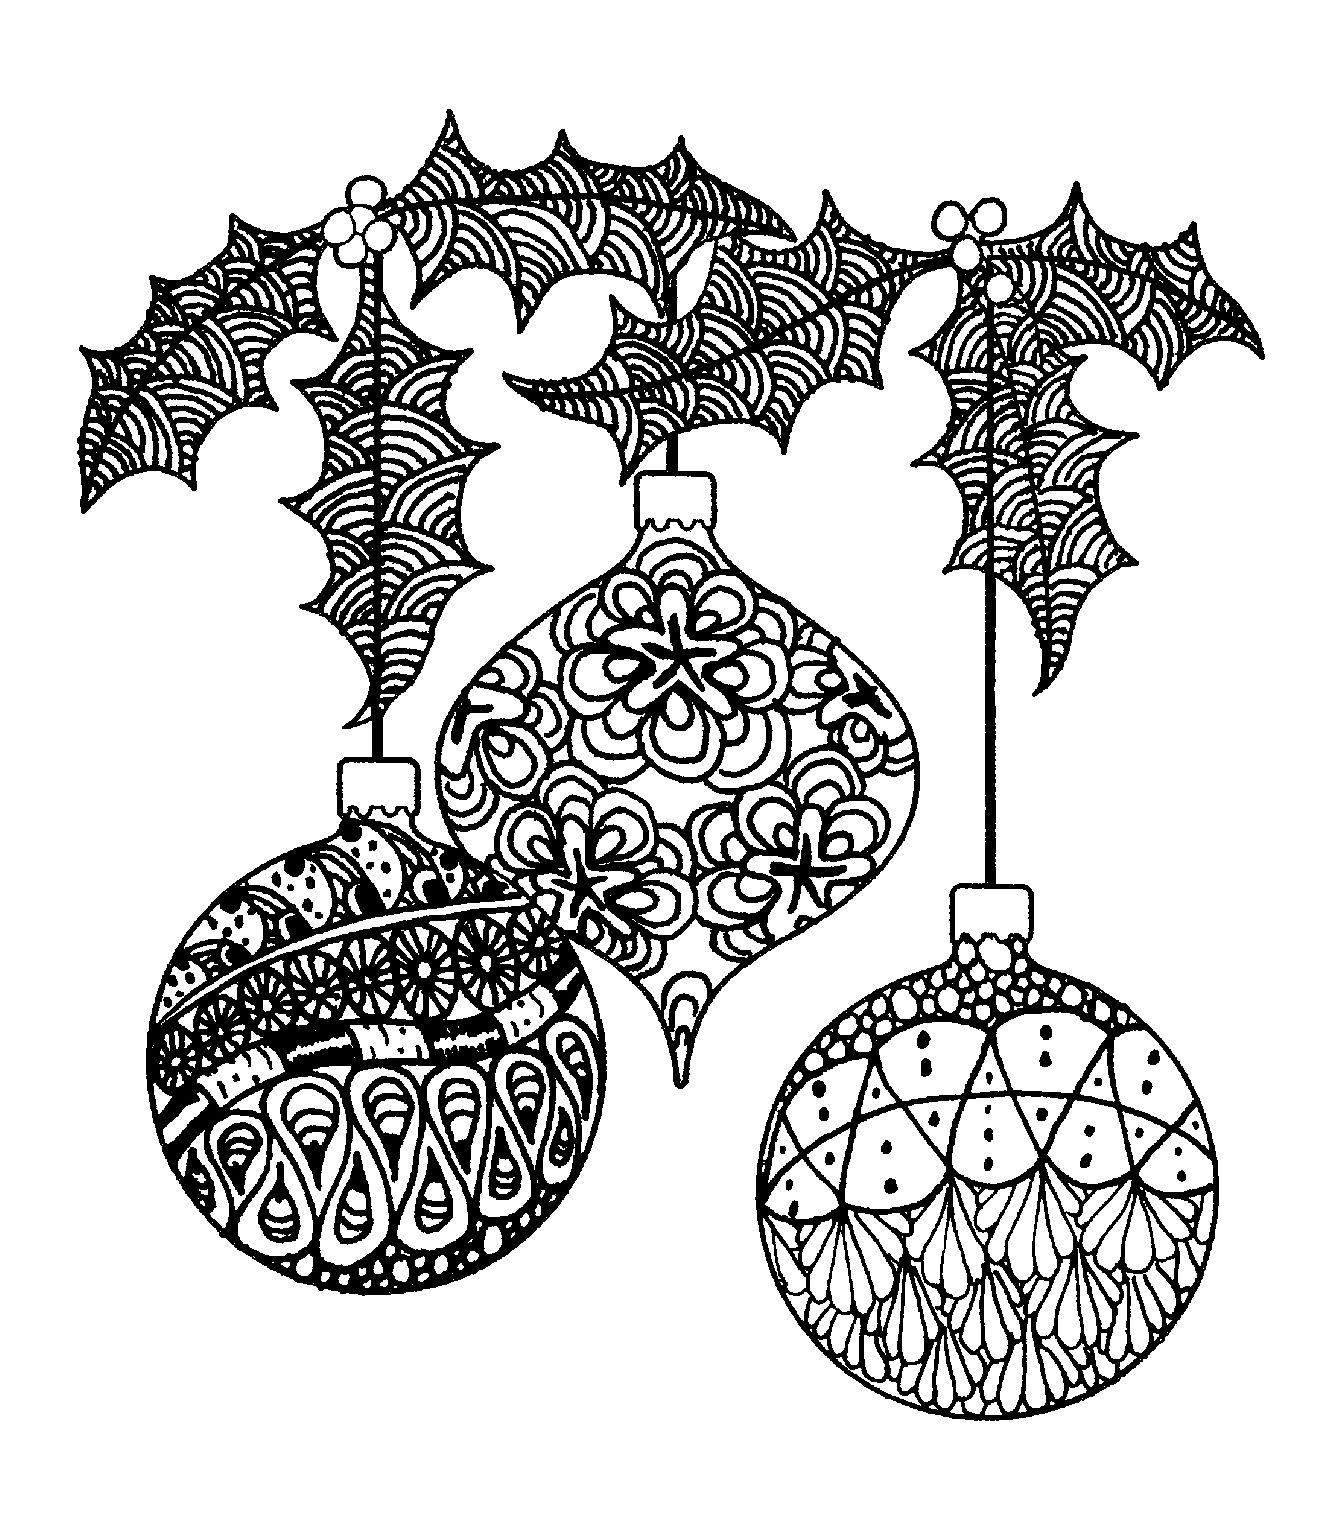 Magenta Zentangle Ornaments Rubber Cling Stampsmagenta